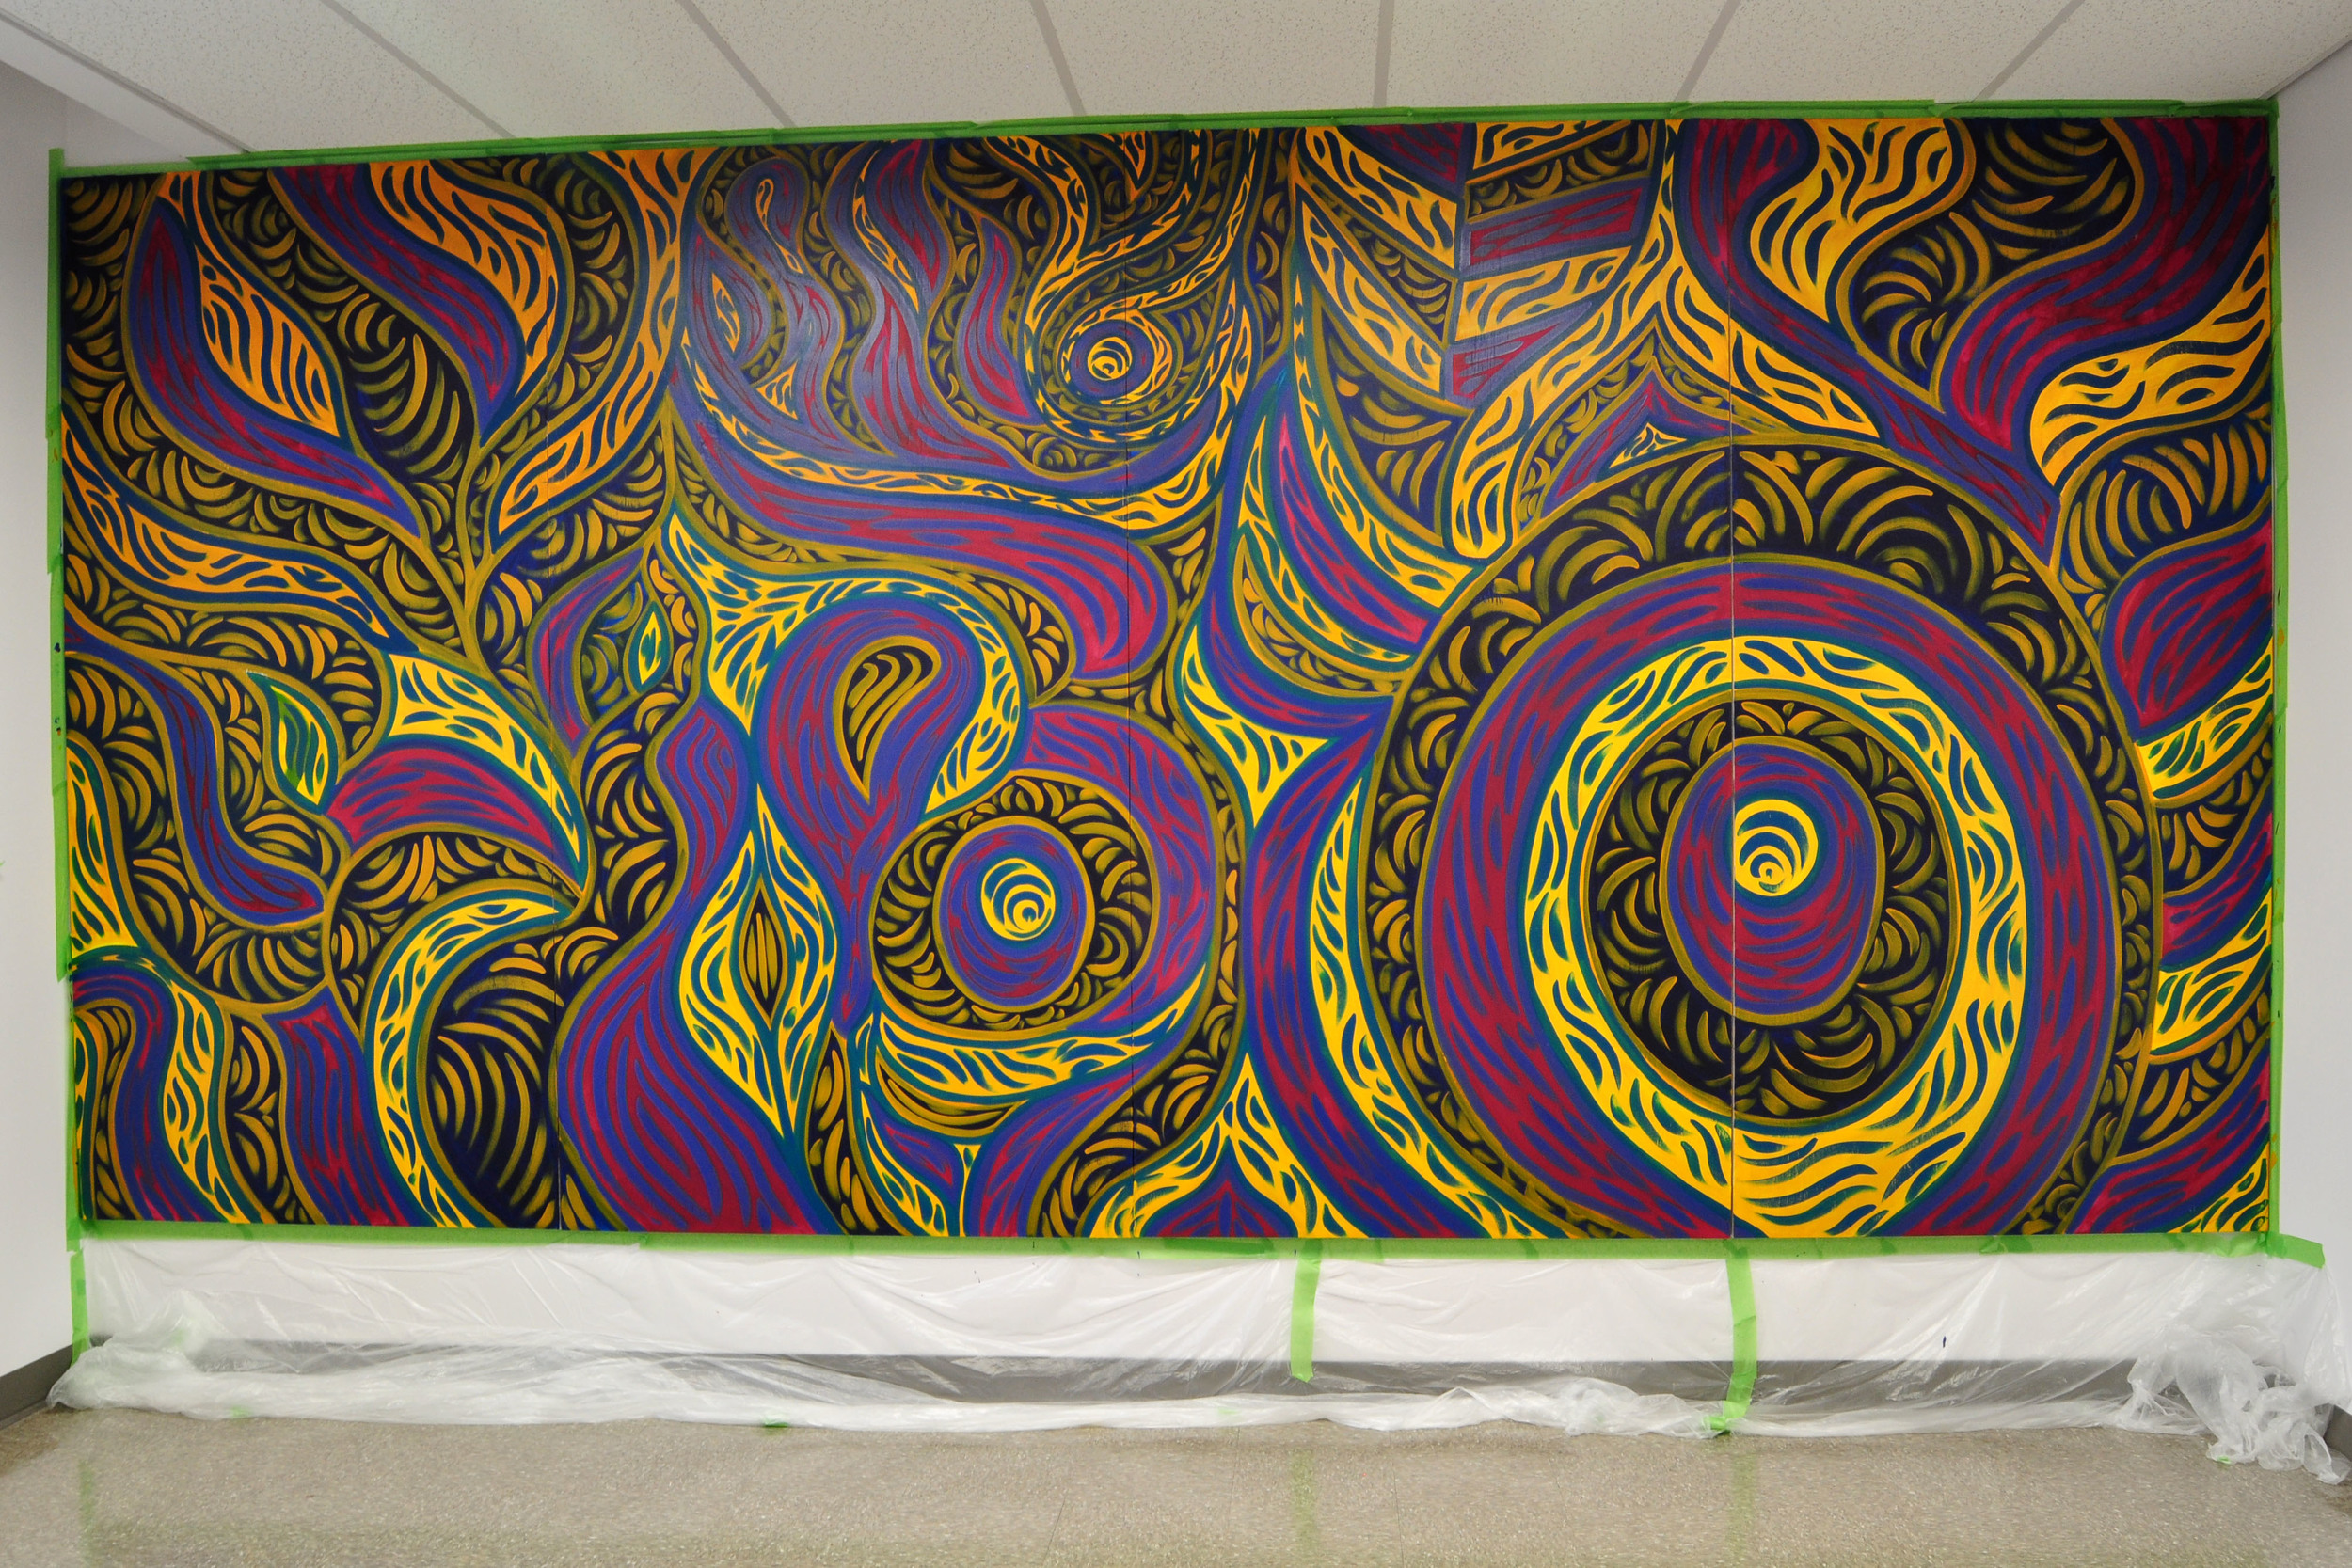 Fiesta (Studio View)  , 15 ft 4 inches x 7 ft 6 inches, Acrylic on pine, 2015, Mallory Donen,  Tache 372, University of Manitoba, MB